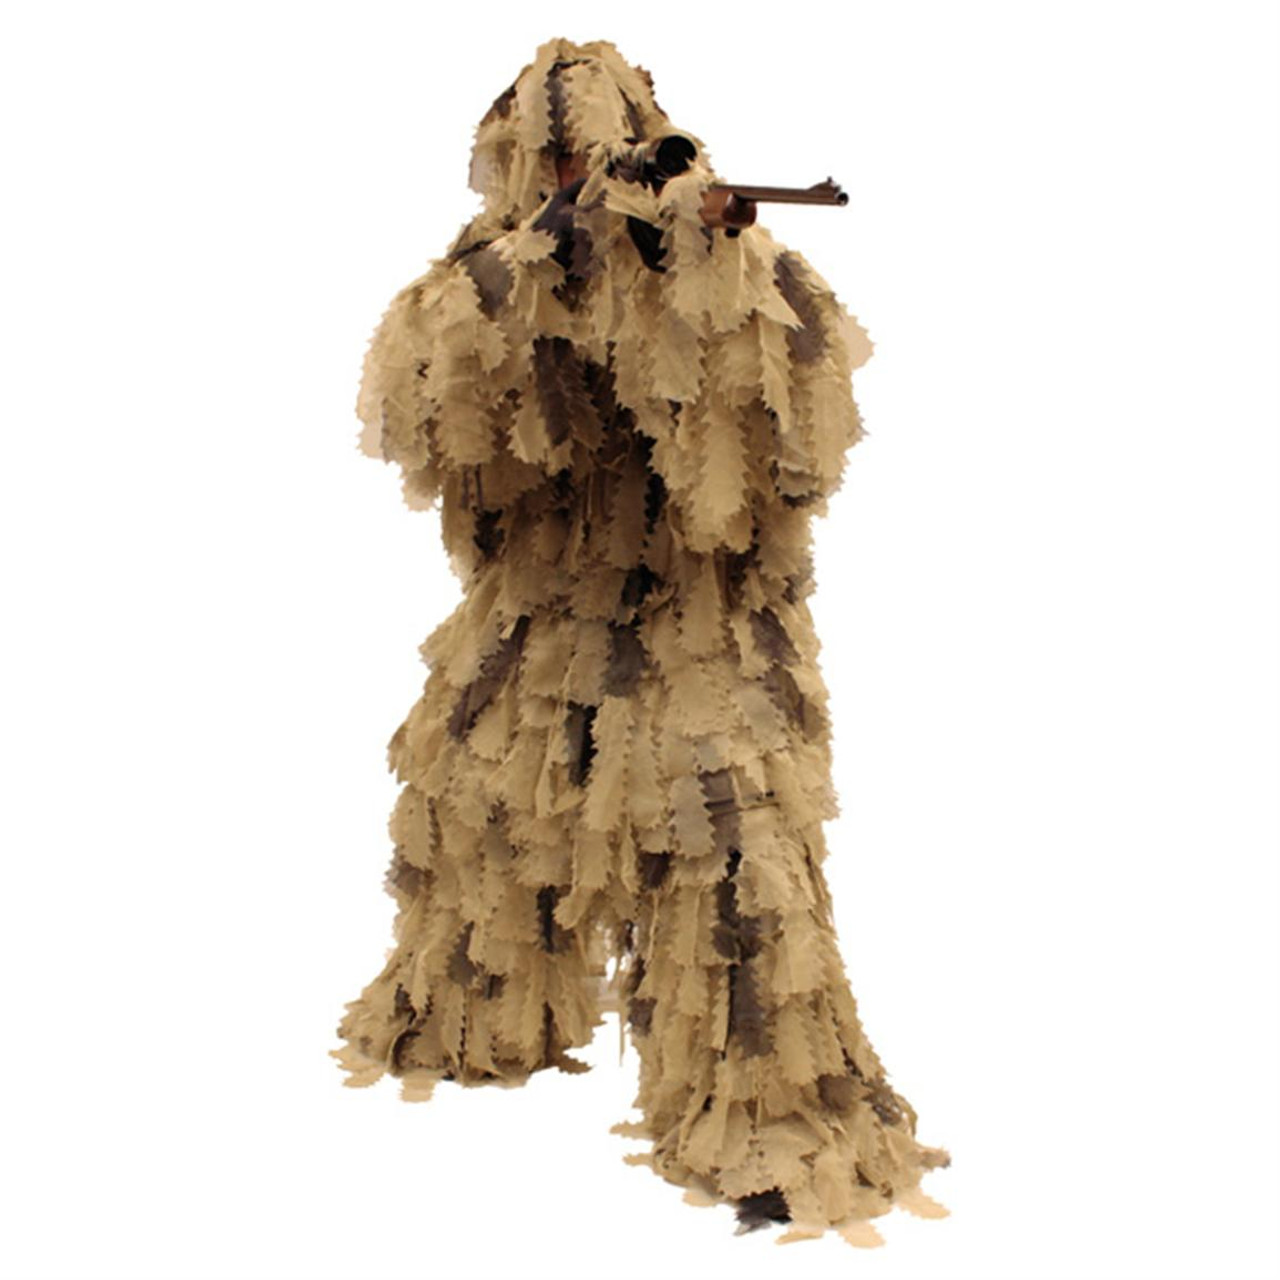 bb959e7c919d7 Red Rock Outdoors Big Game Leaf Cut Design Ghillie Suit Open Country Camo  70966 D